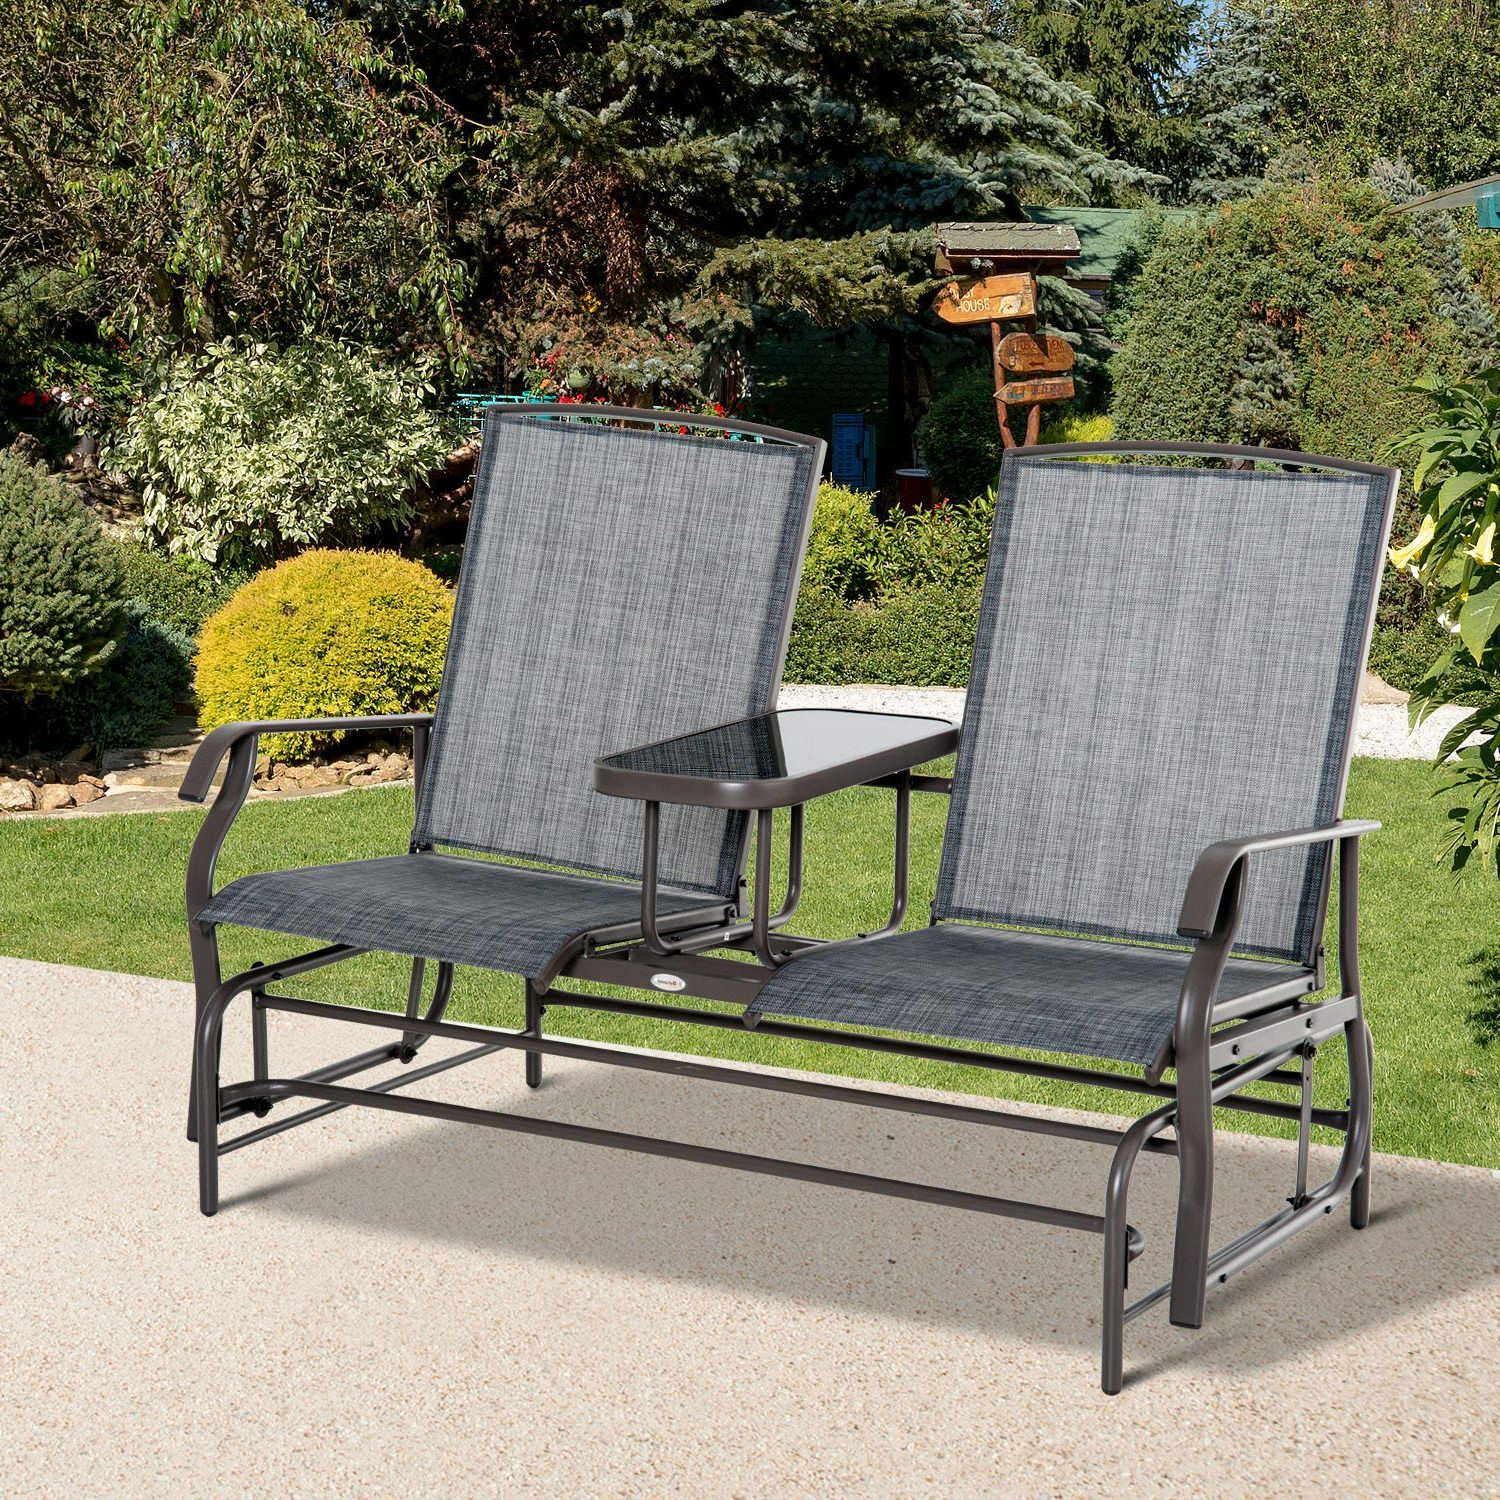 Most Recently Released Outsunny 2 Seater Patio Glider Rocking Chair Metal Swing Bench Furniture Table With Outdoor Patio Swing Glider Bench Chairs (Gallery 17 of 30)